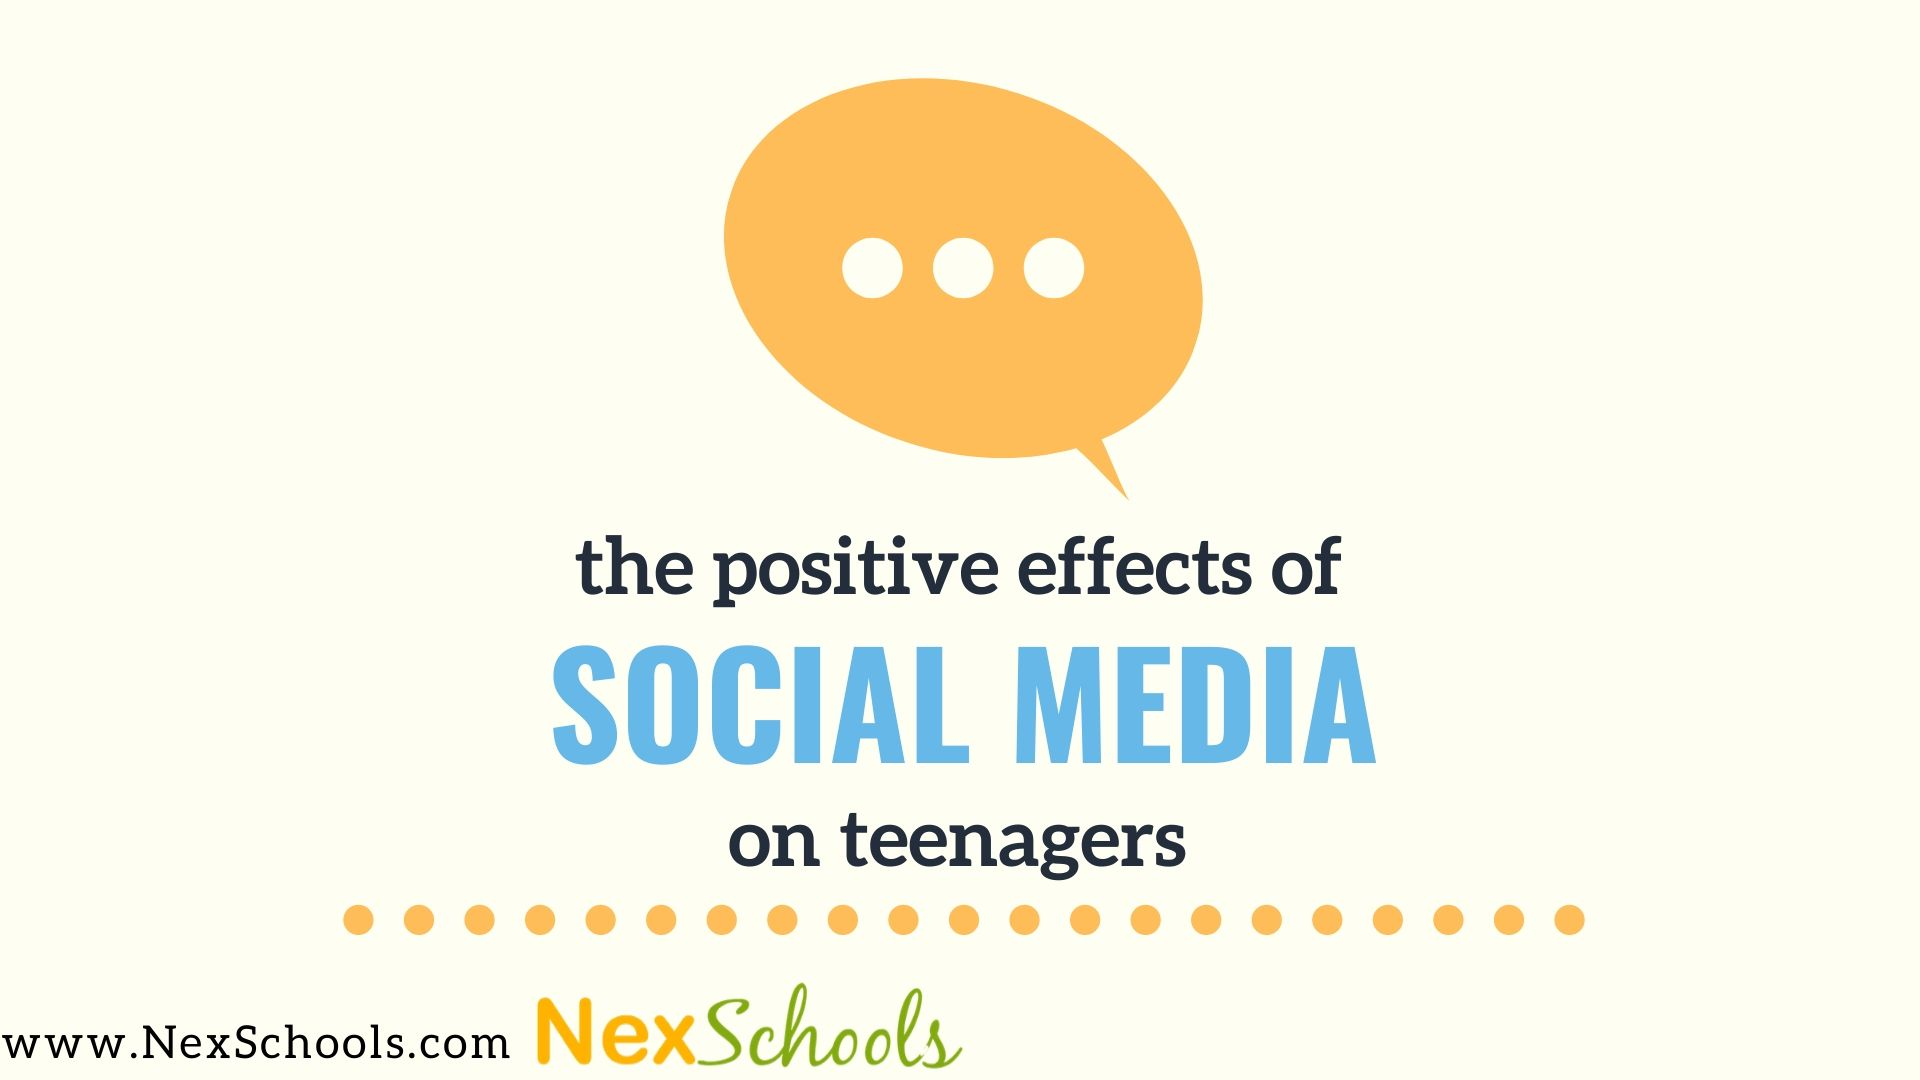 Positive Effects of Social Media on Teens, How To Use Social Media Meaningfully, A Guide by NexSchools.com for  Social Media Awareness for teens Schools